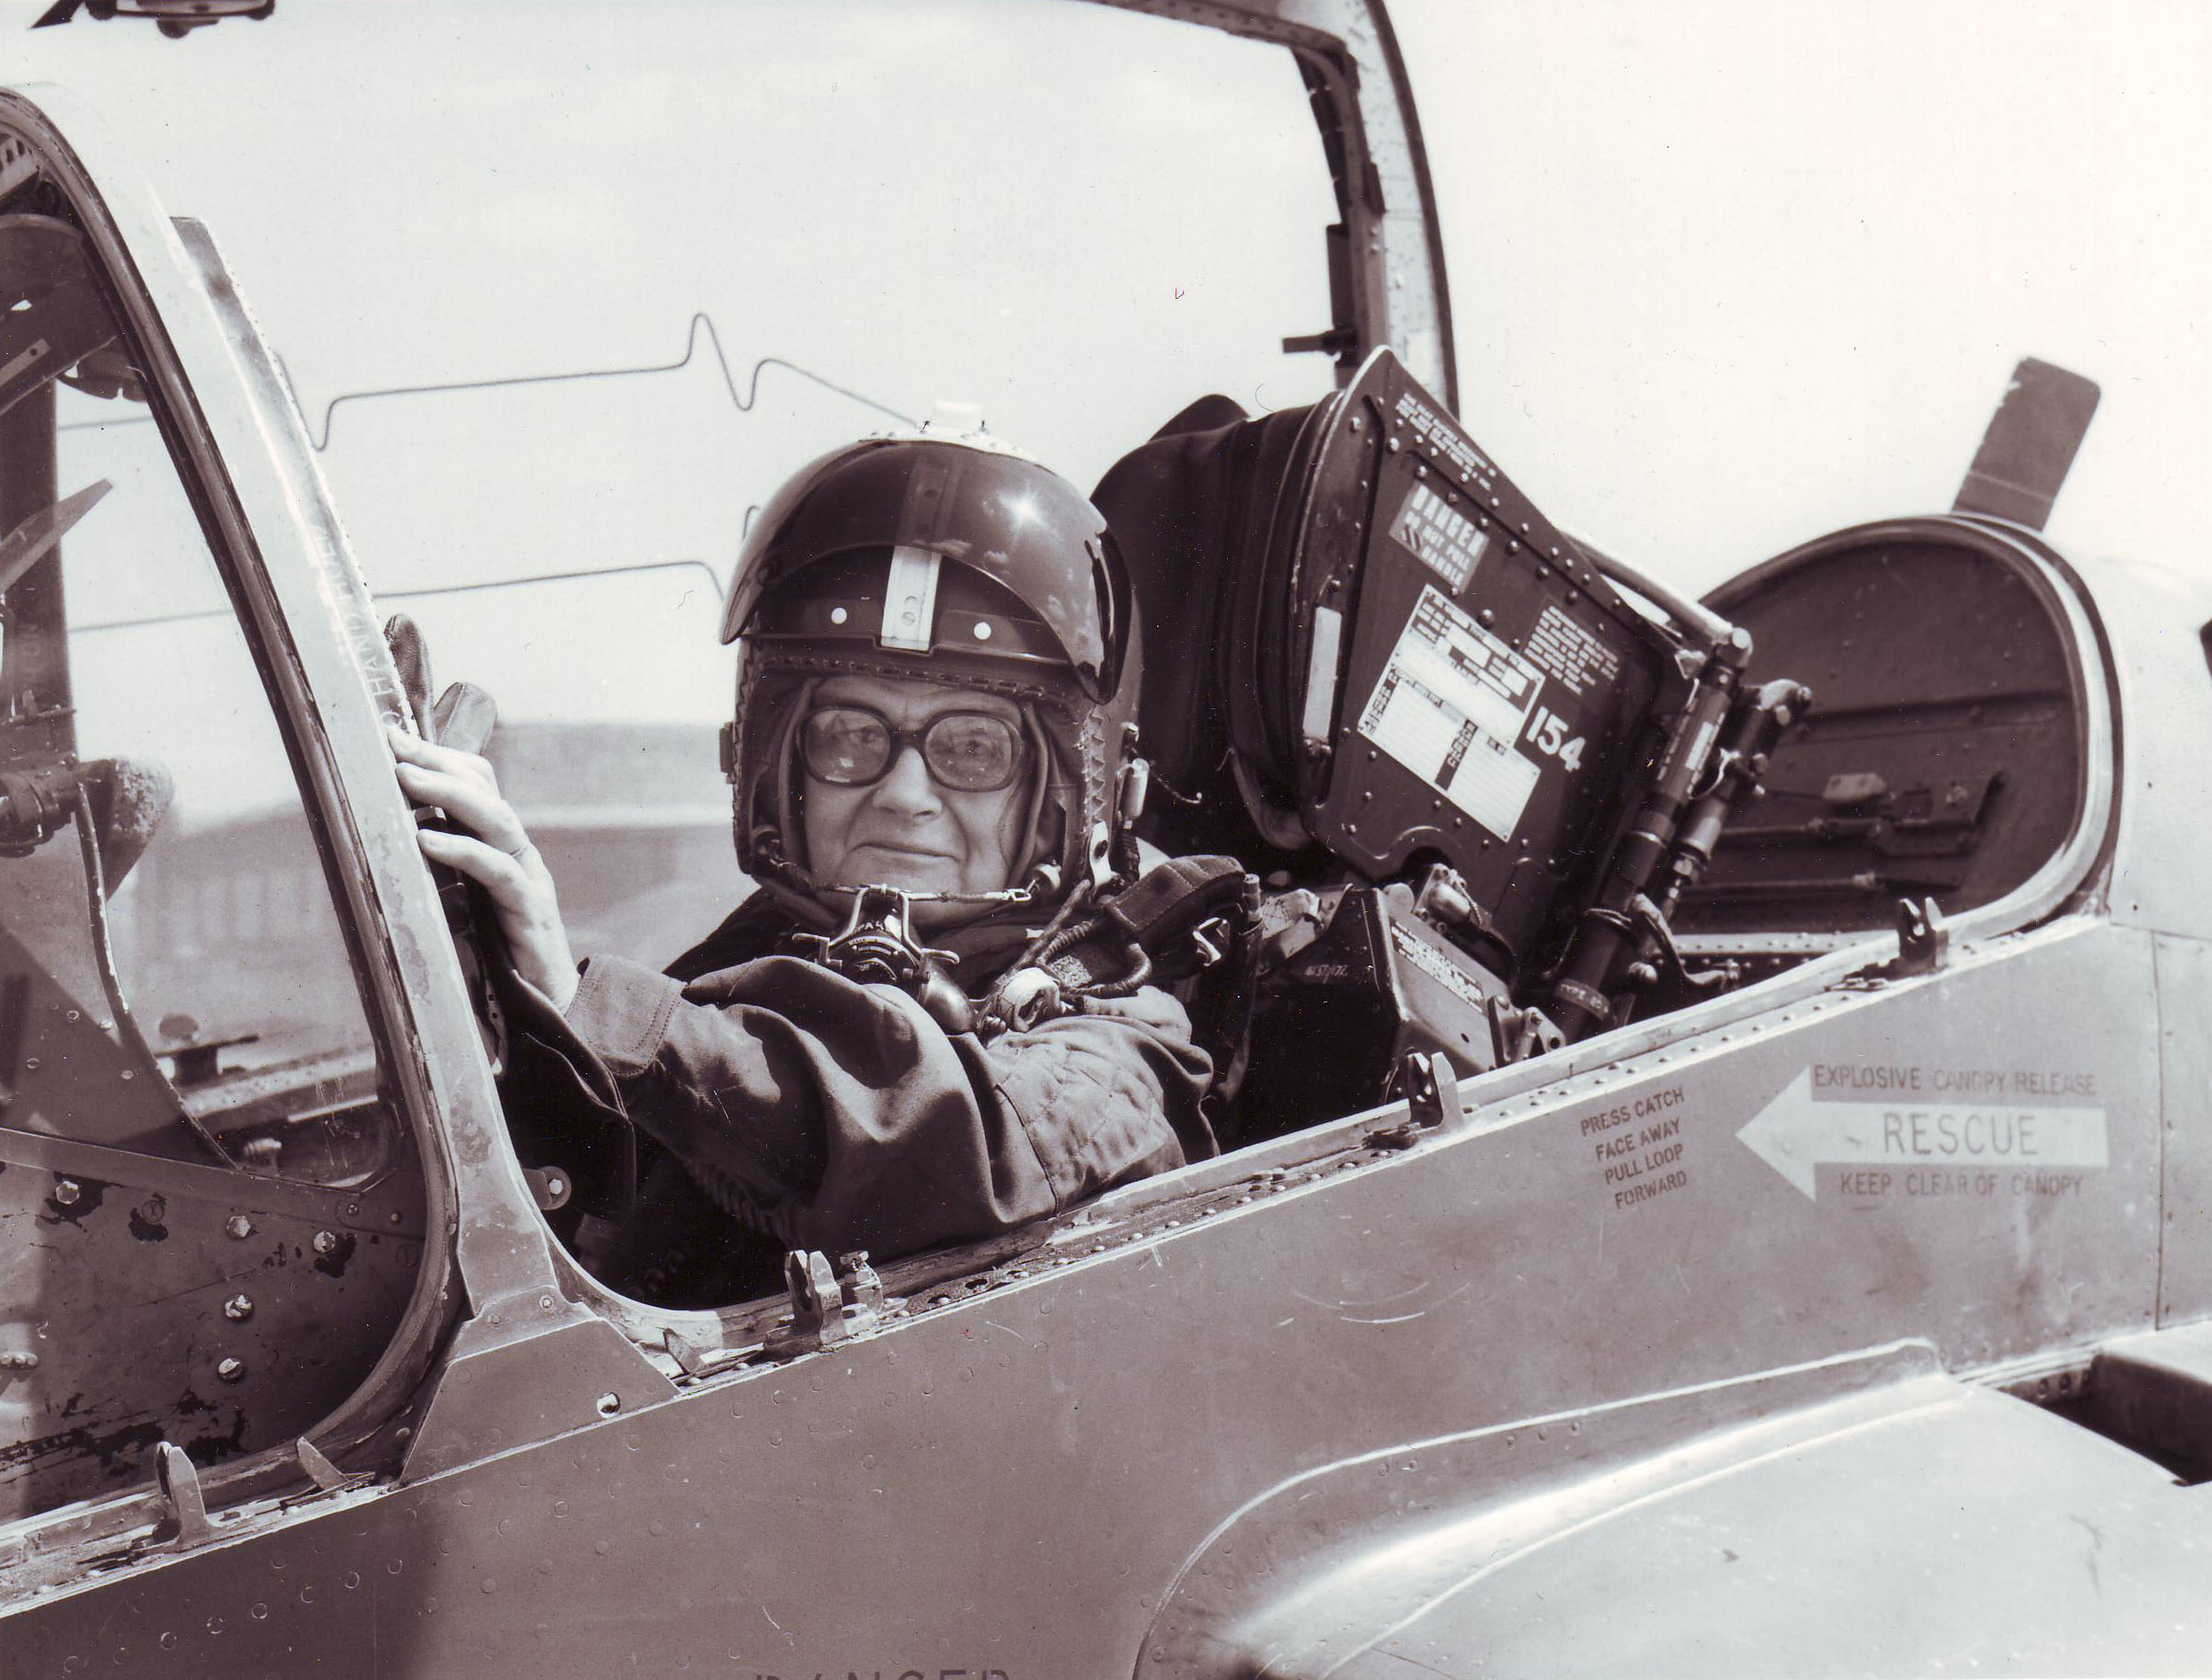 Clare in a jet, likely British RAF, during her time as Daily Telegraph defense correspondent, sometime between 1976 and 1981